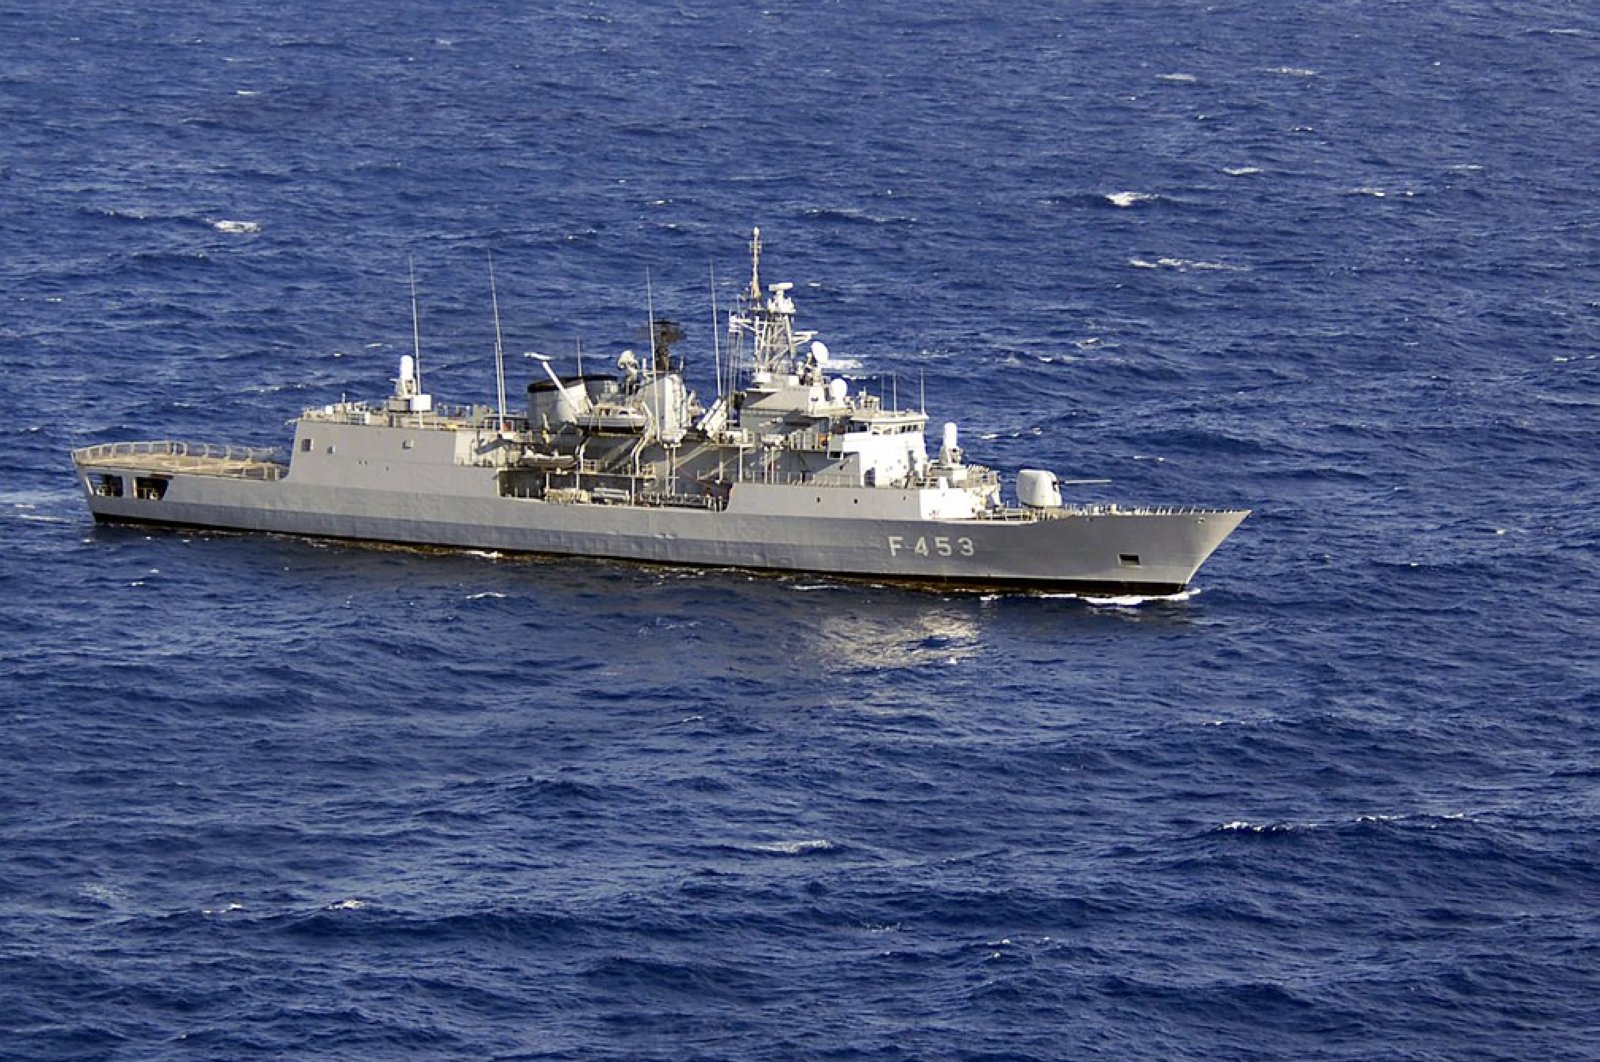 The Greek frigate HS Spetsai transits the Mediterranean Sea during the Phoenix Express naval exercise in April 2008. (Photo from Wikipedia)